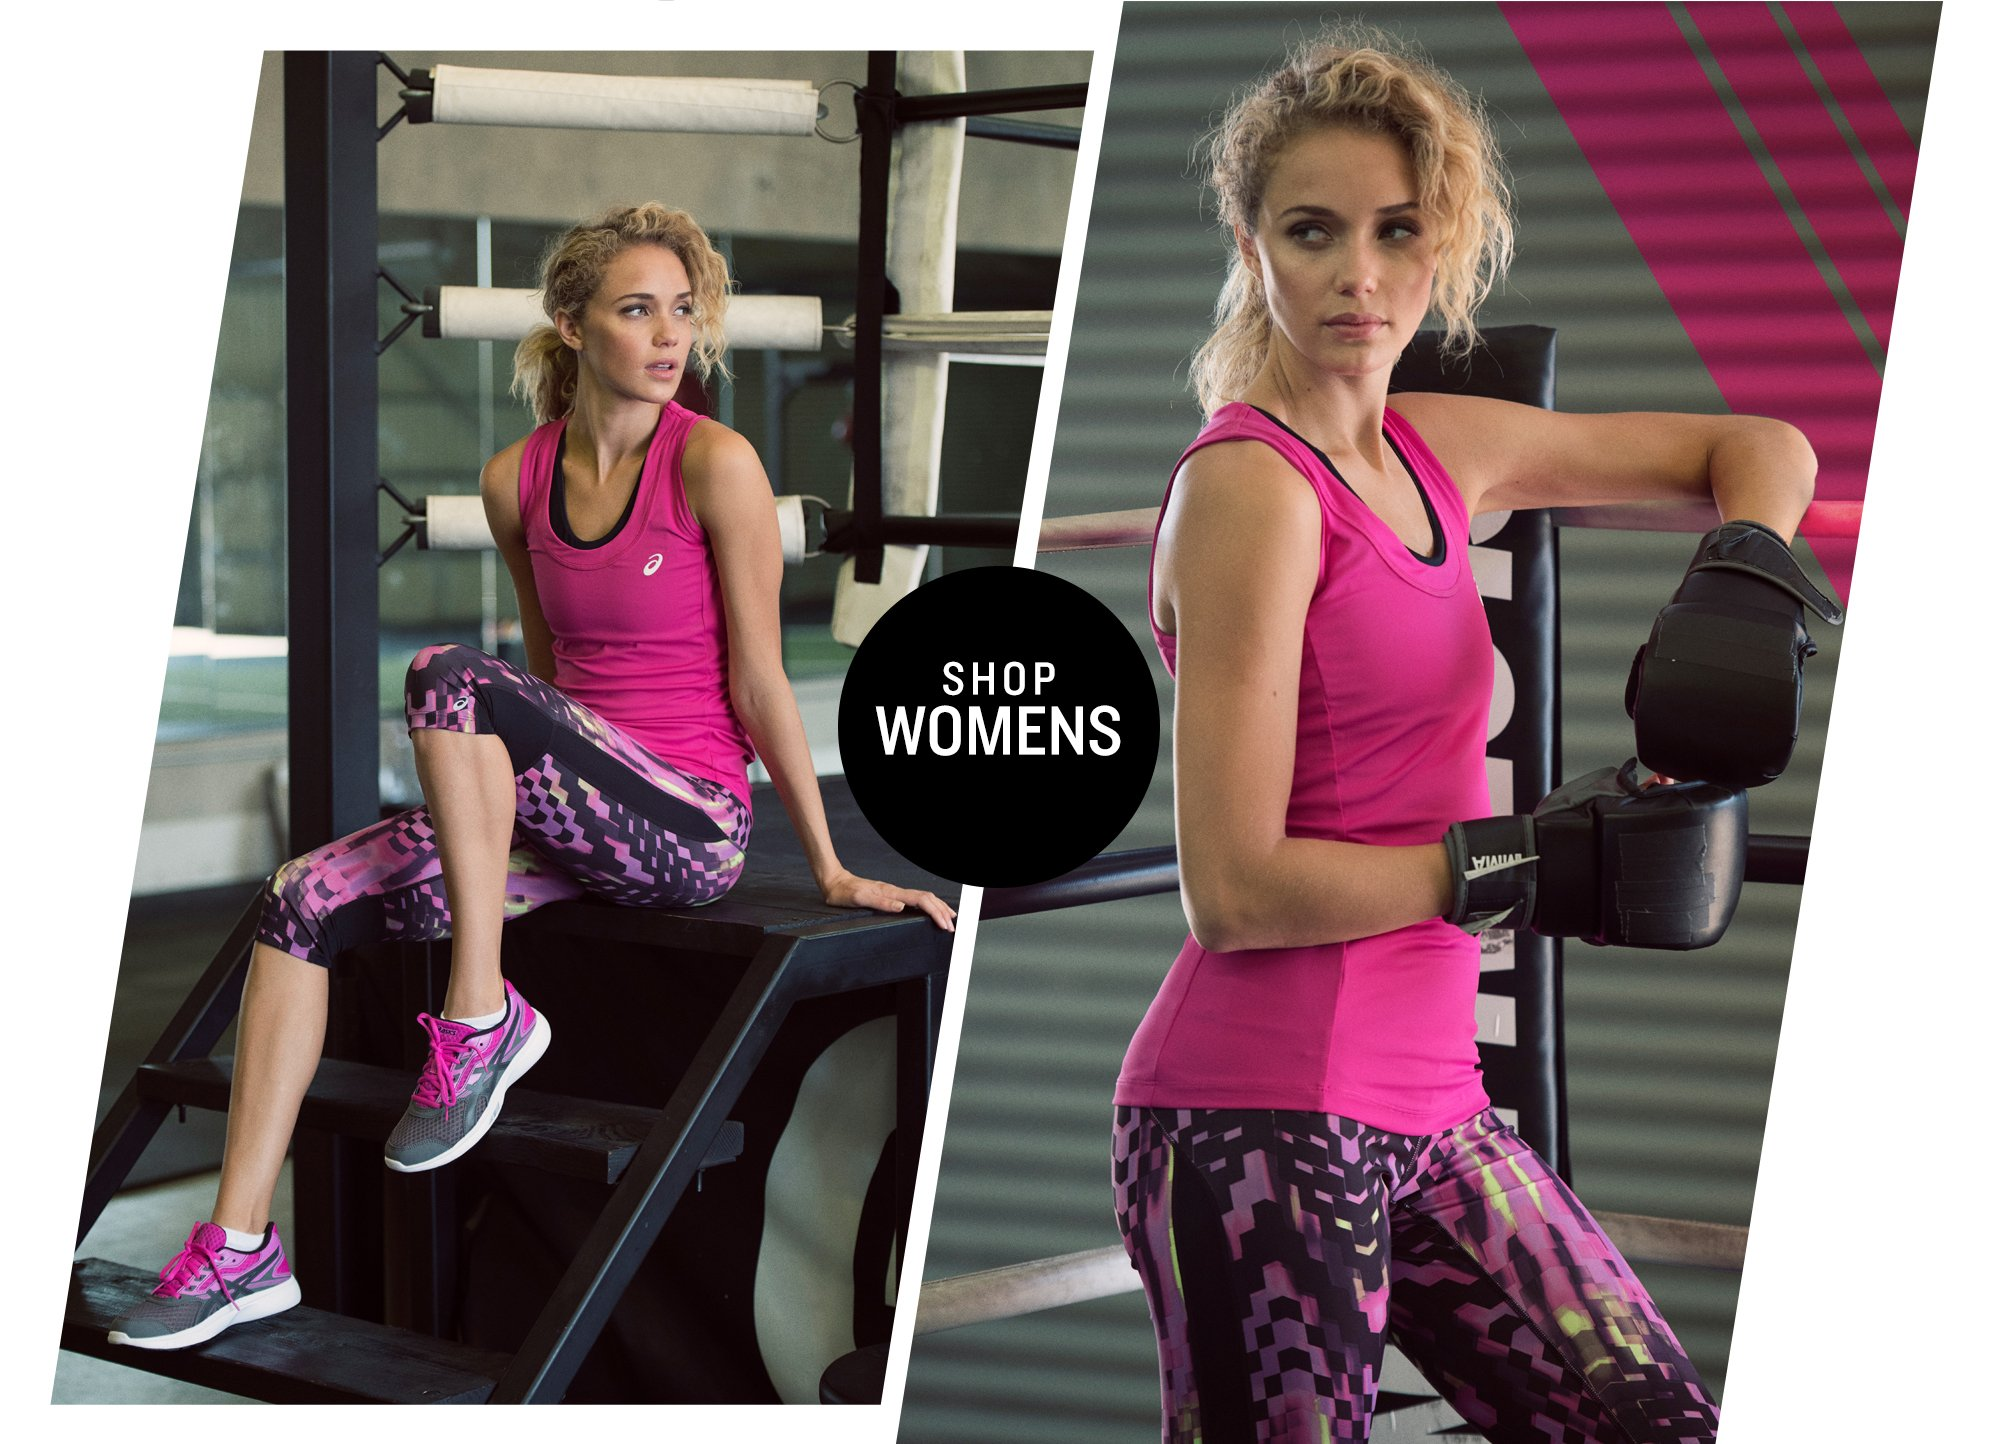 ASICS - Shop Womens